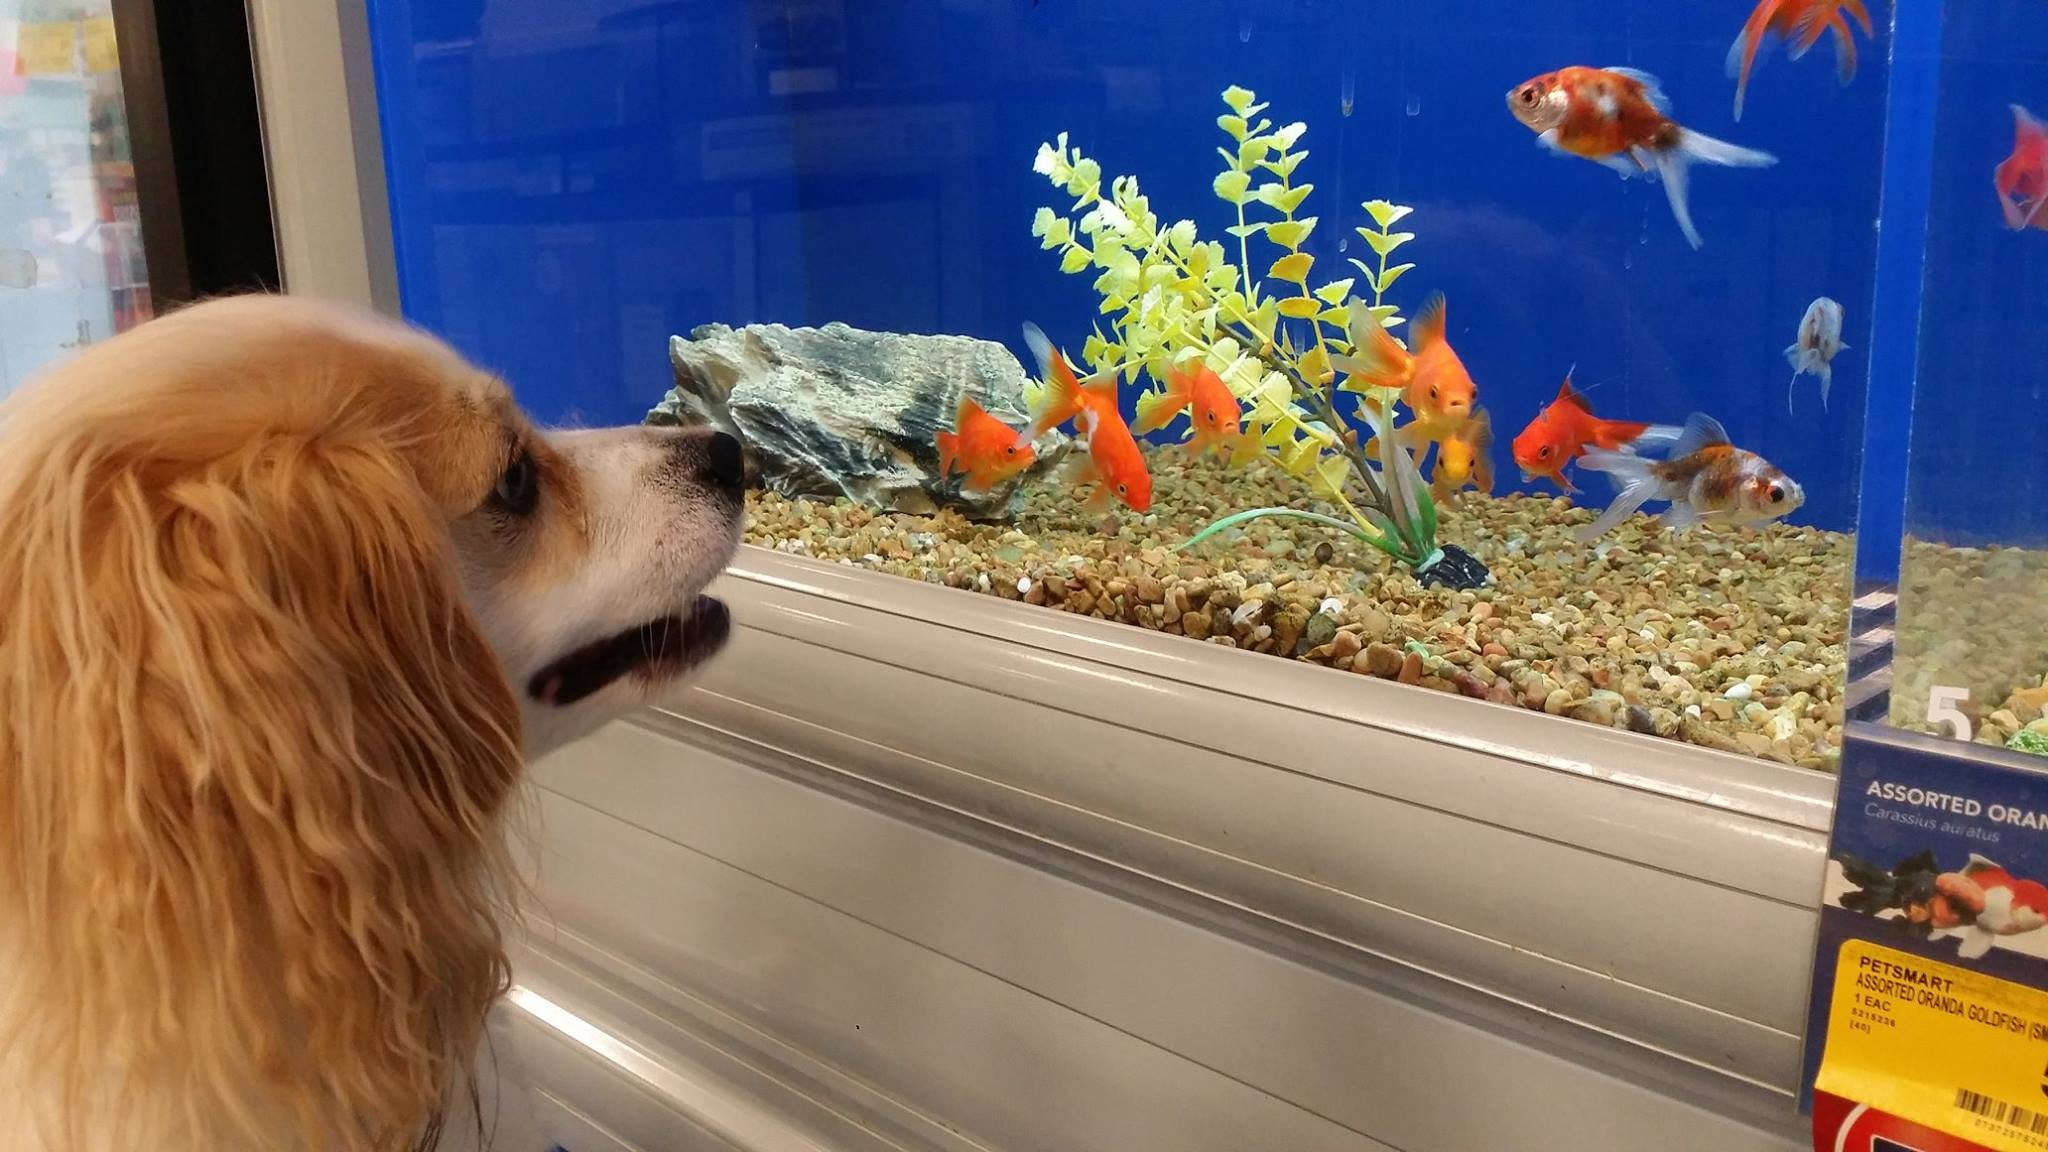 Puppy sees Goldfish for the 1st time by MarthaHerman